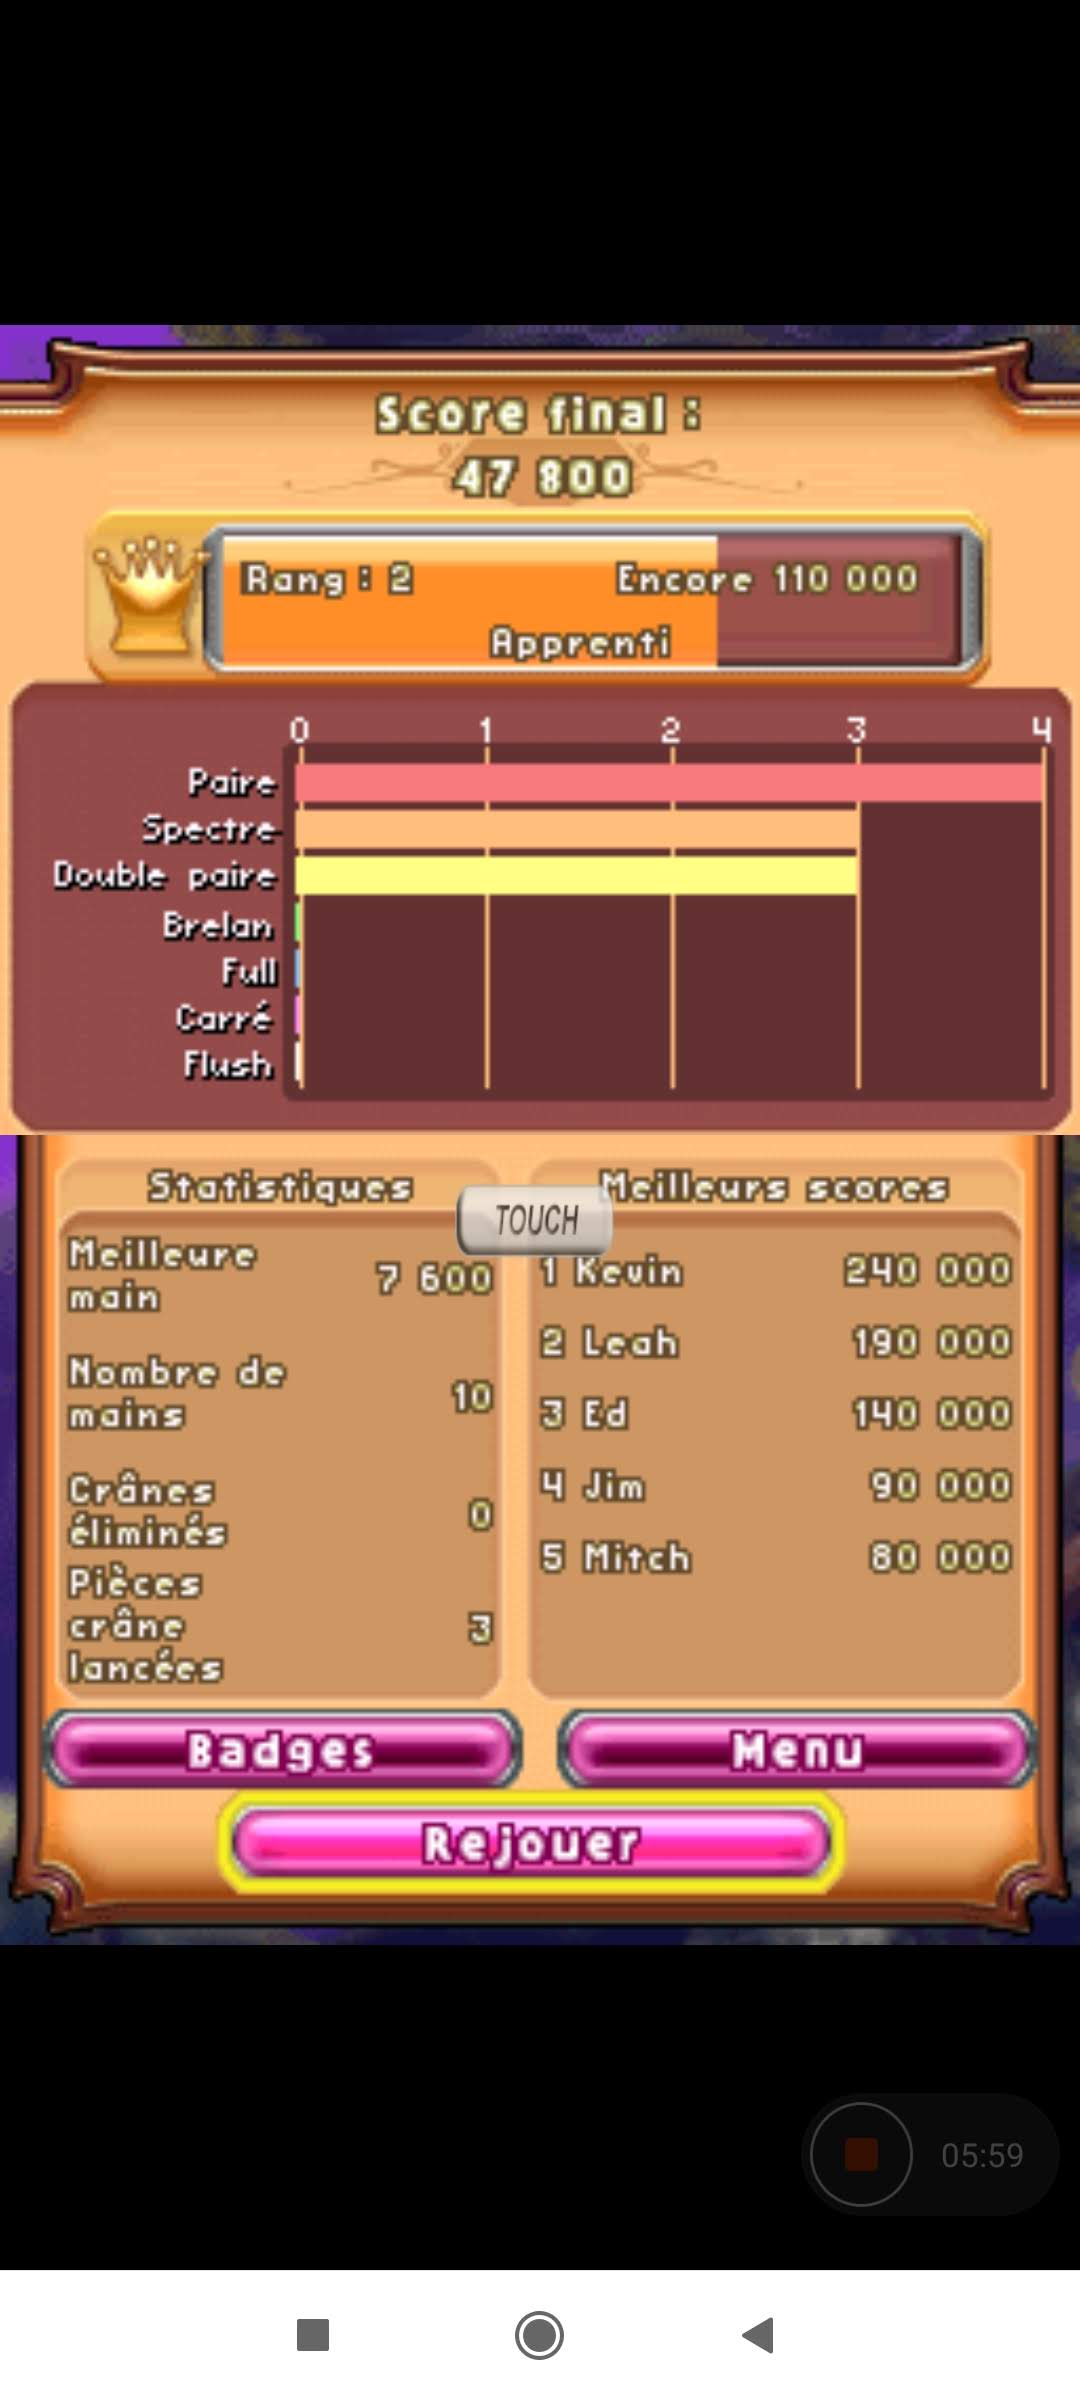 Larquey: Bejeweled 3: Poker [Number of 3 of a Kind] (Nintendo DS Emulated) 0 points on 2020-09-26 03:31:30